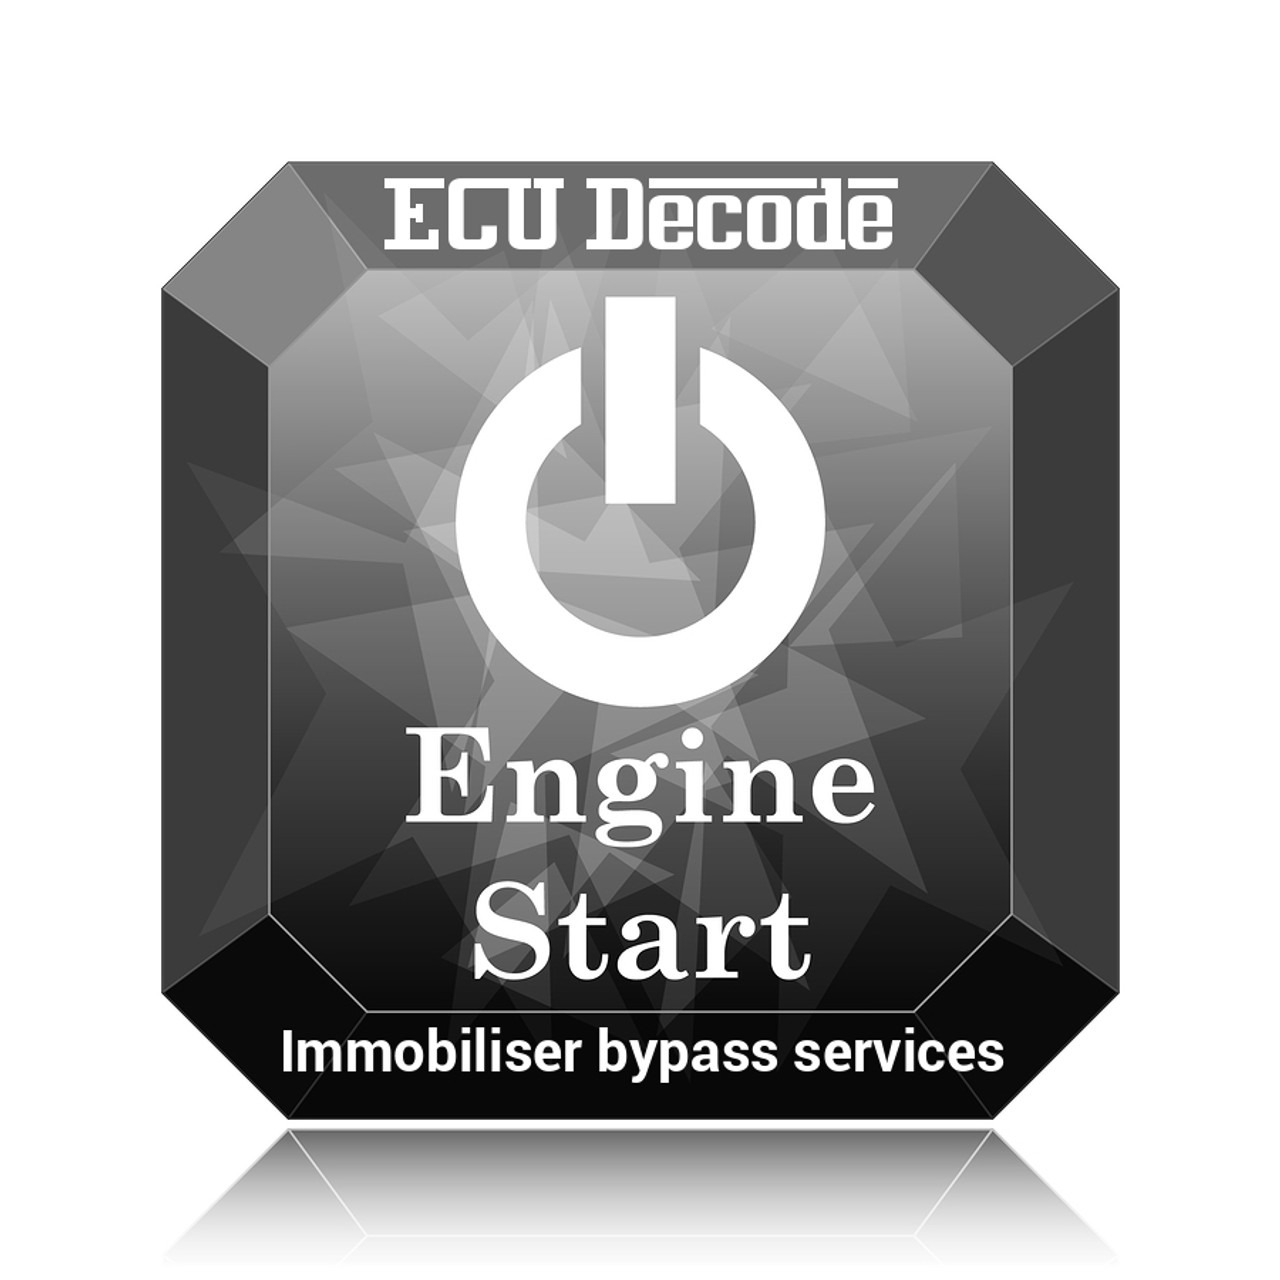 VW Immobiliser Bypass Services From ECU Decode Tel 01373 302412